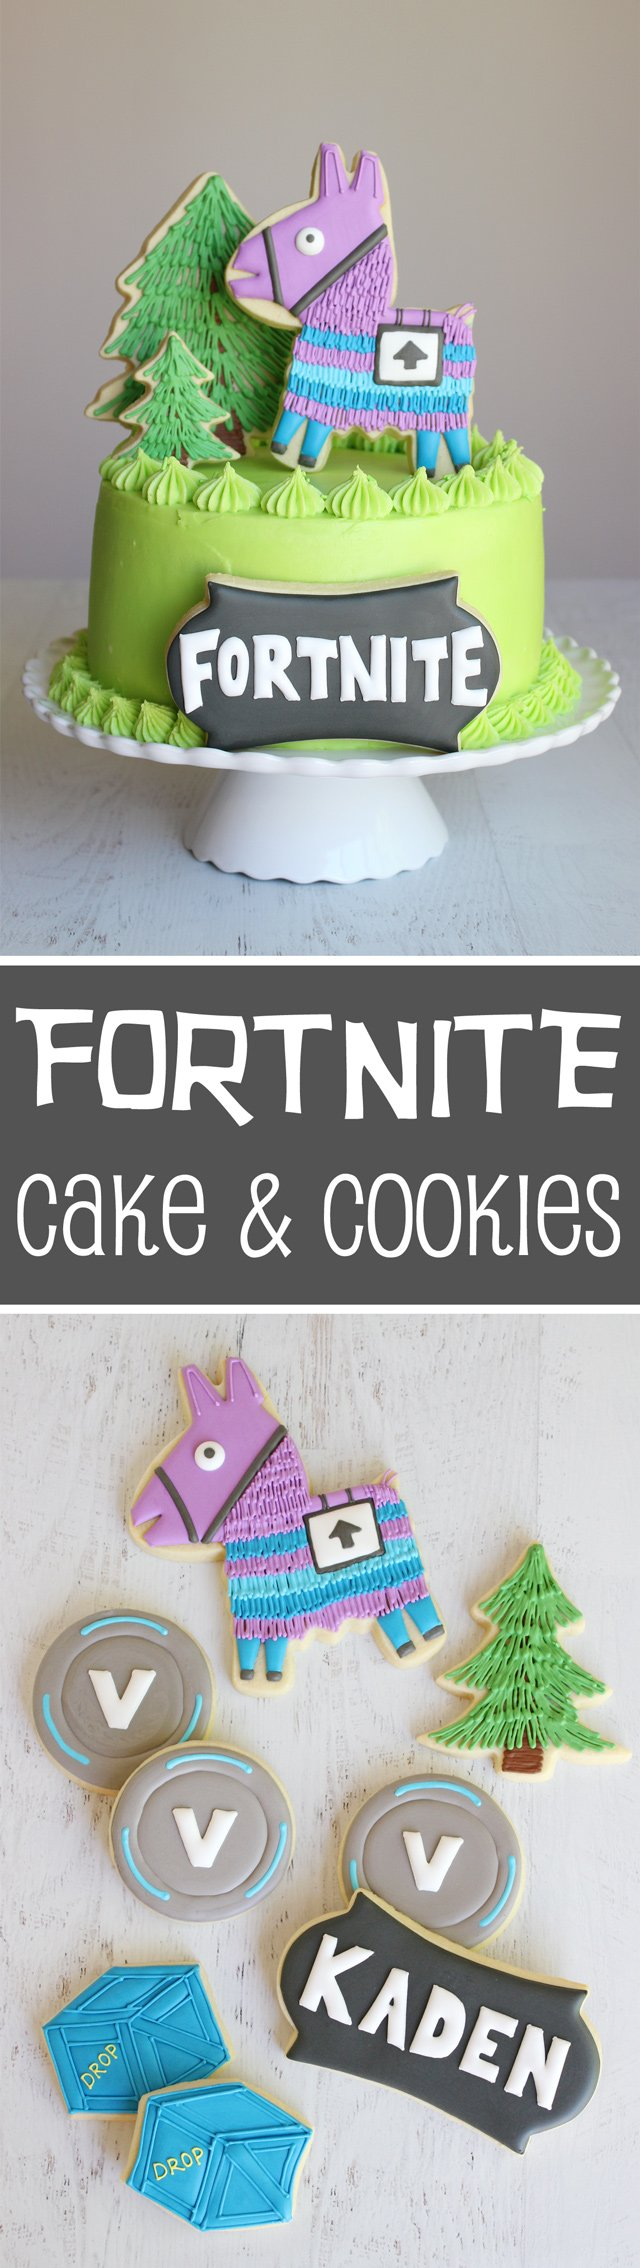 Fortnite Birthday Cake & Cookies